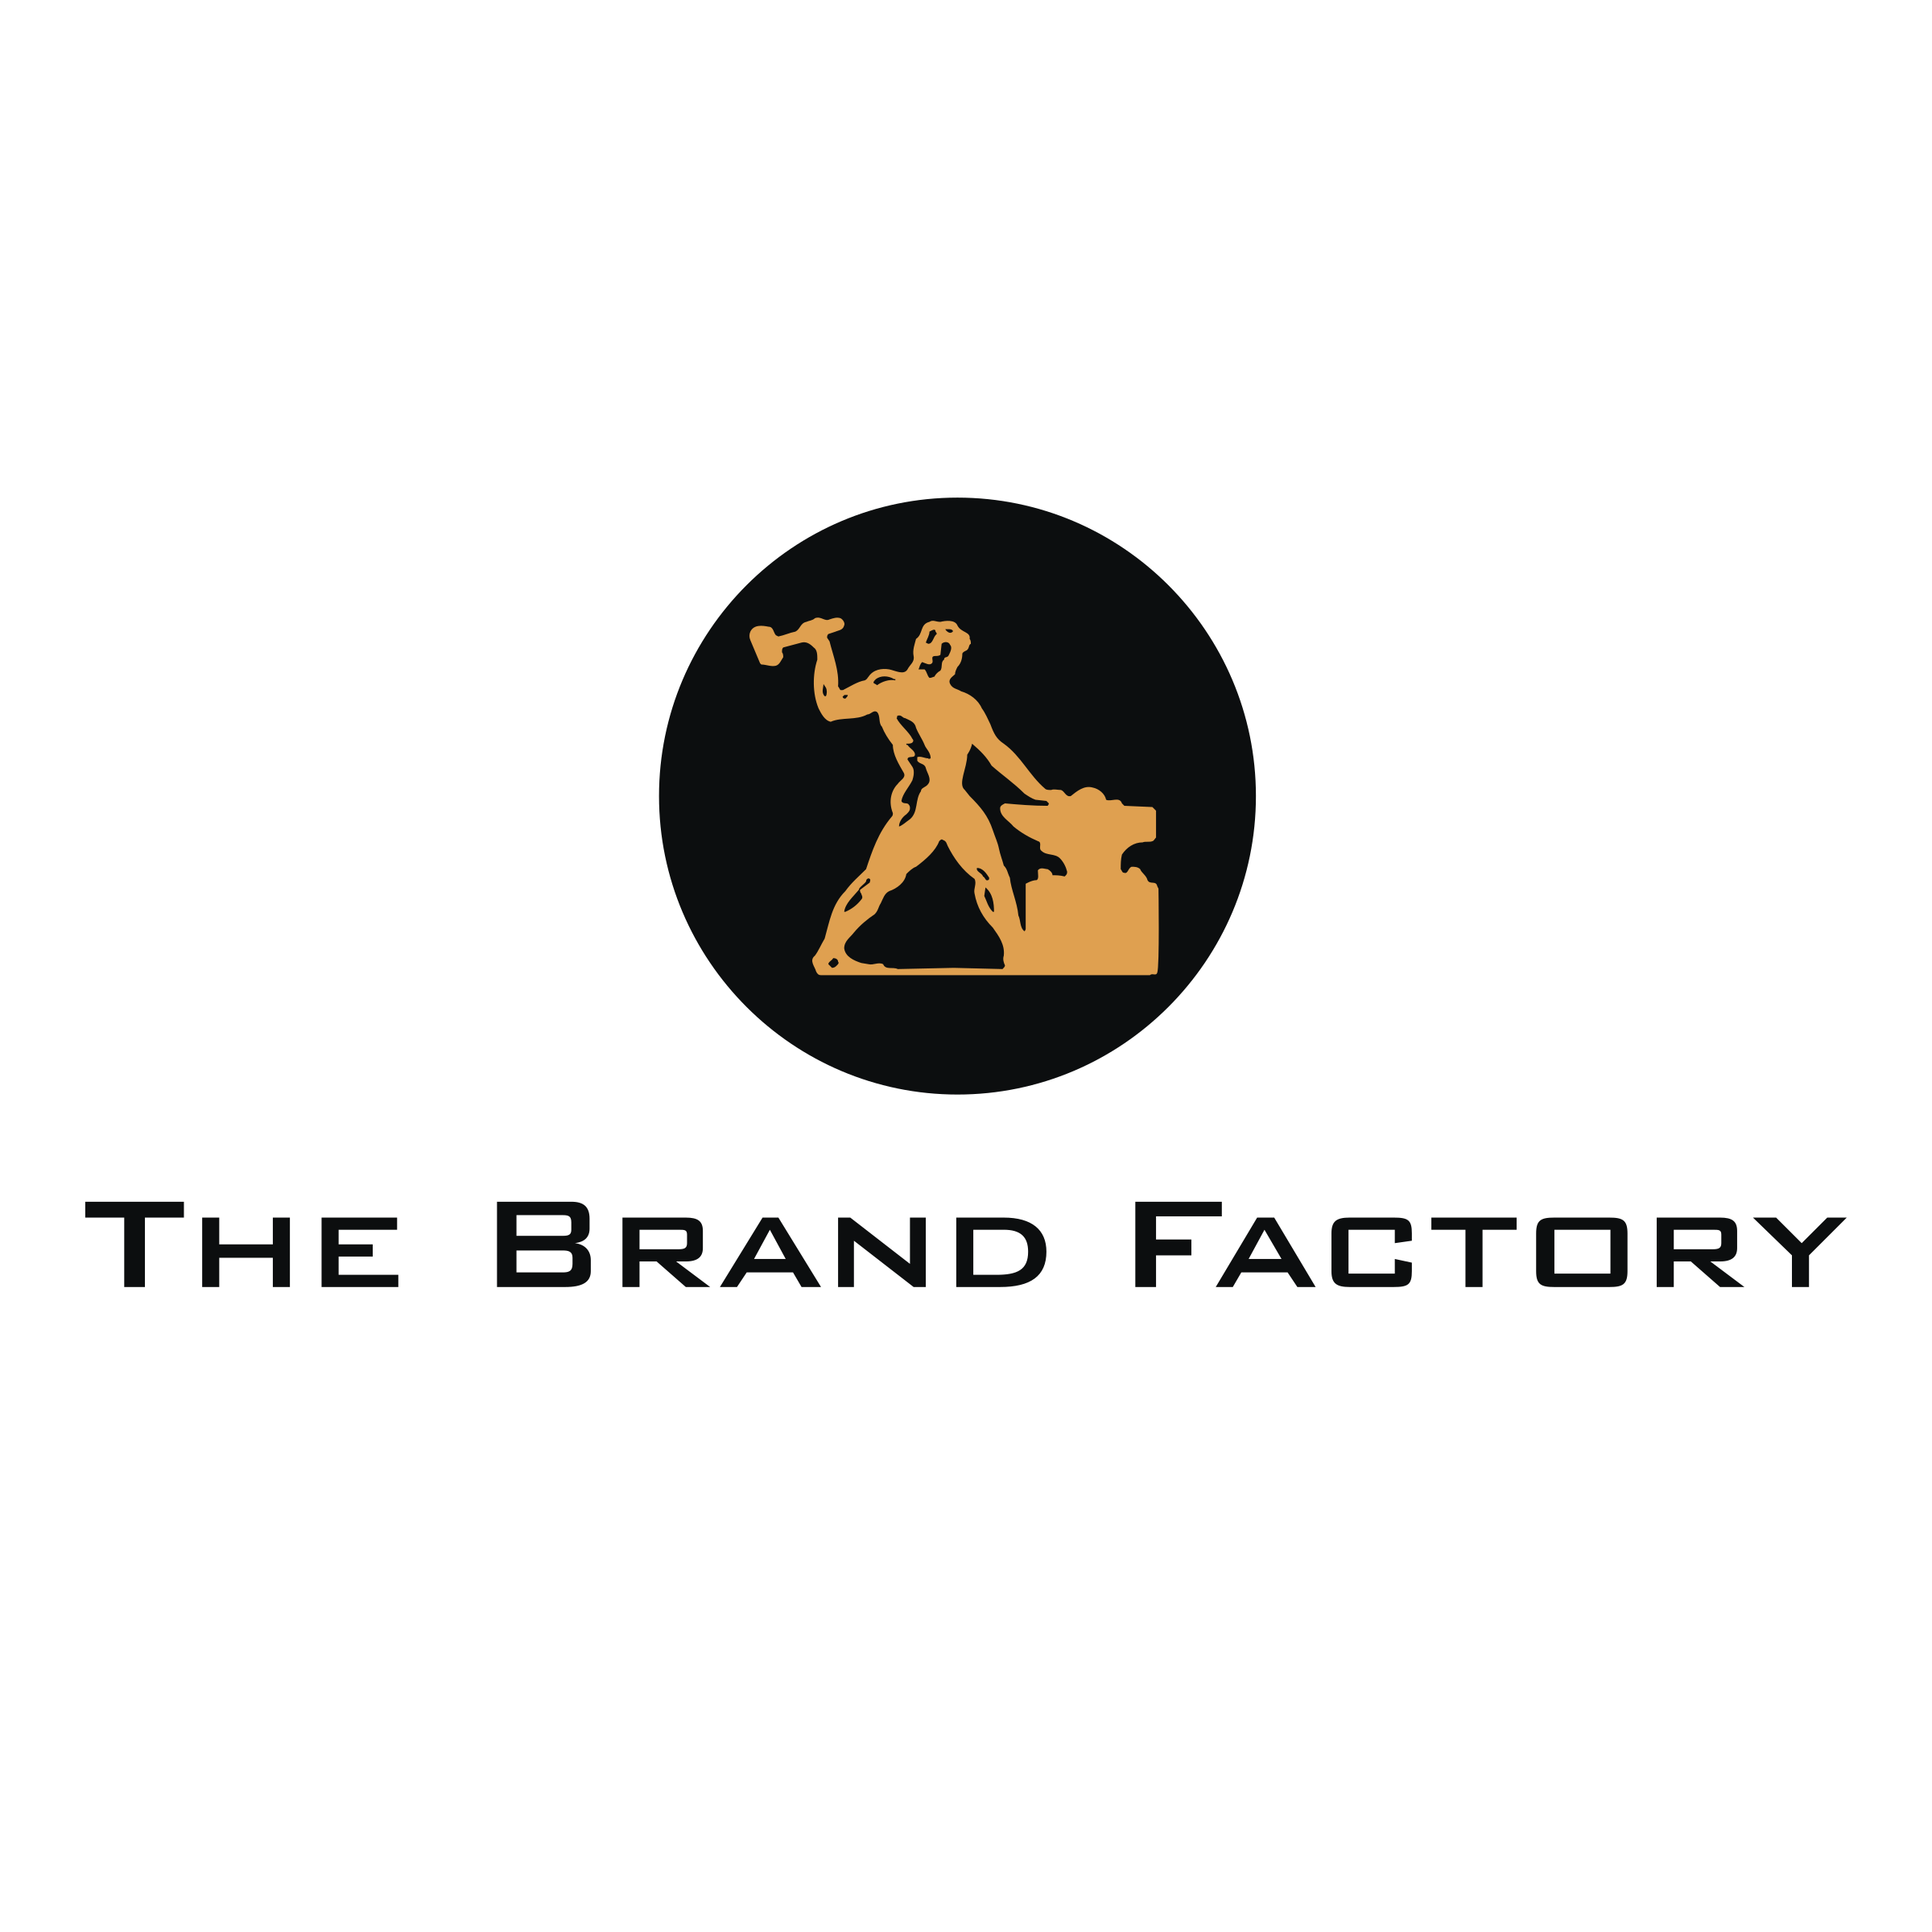 Vector factory logo. The brand png transparent